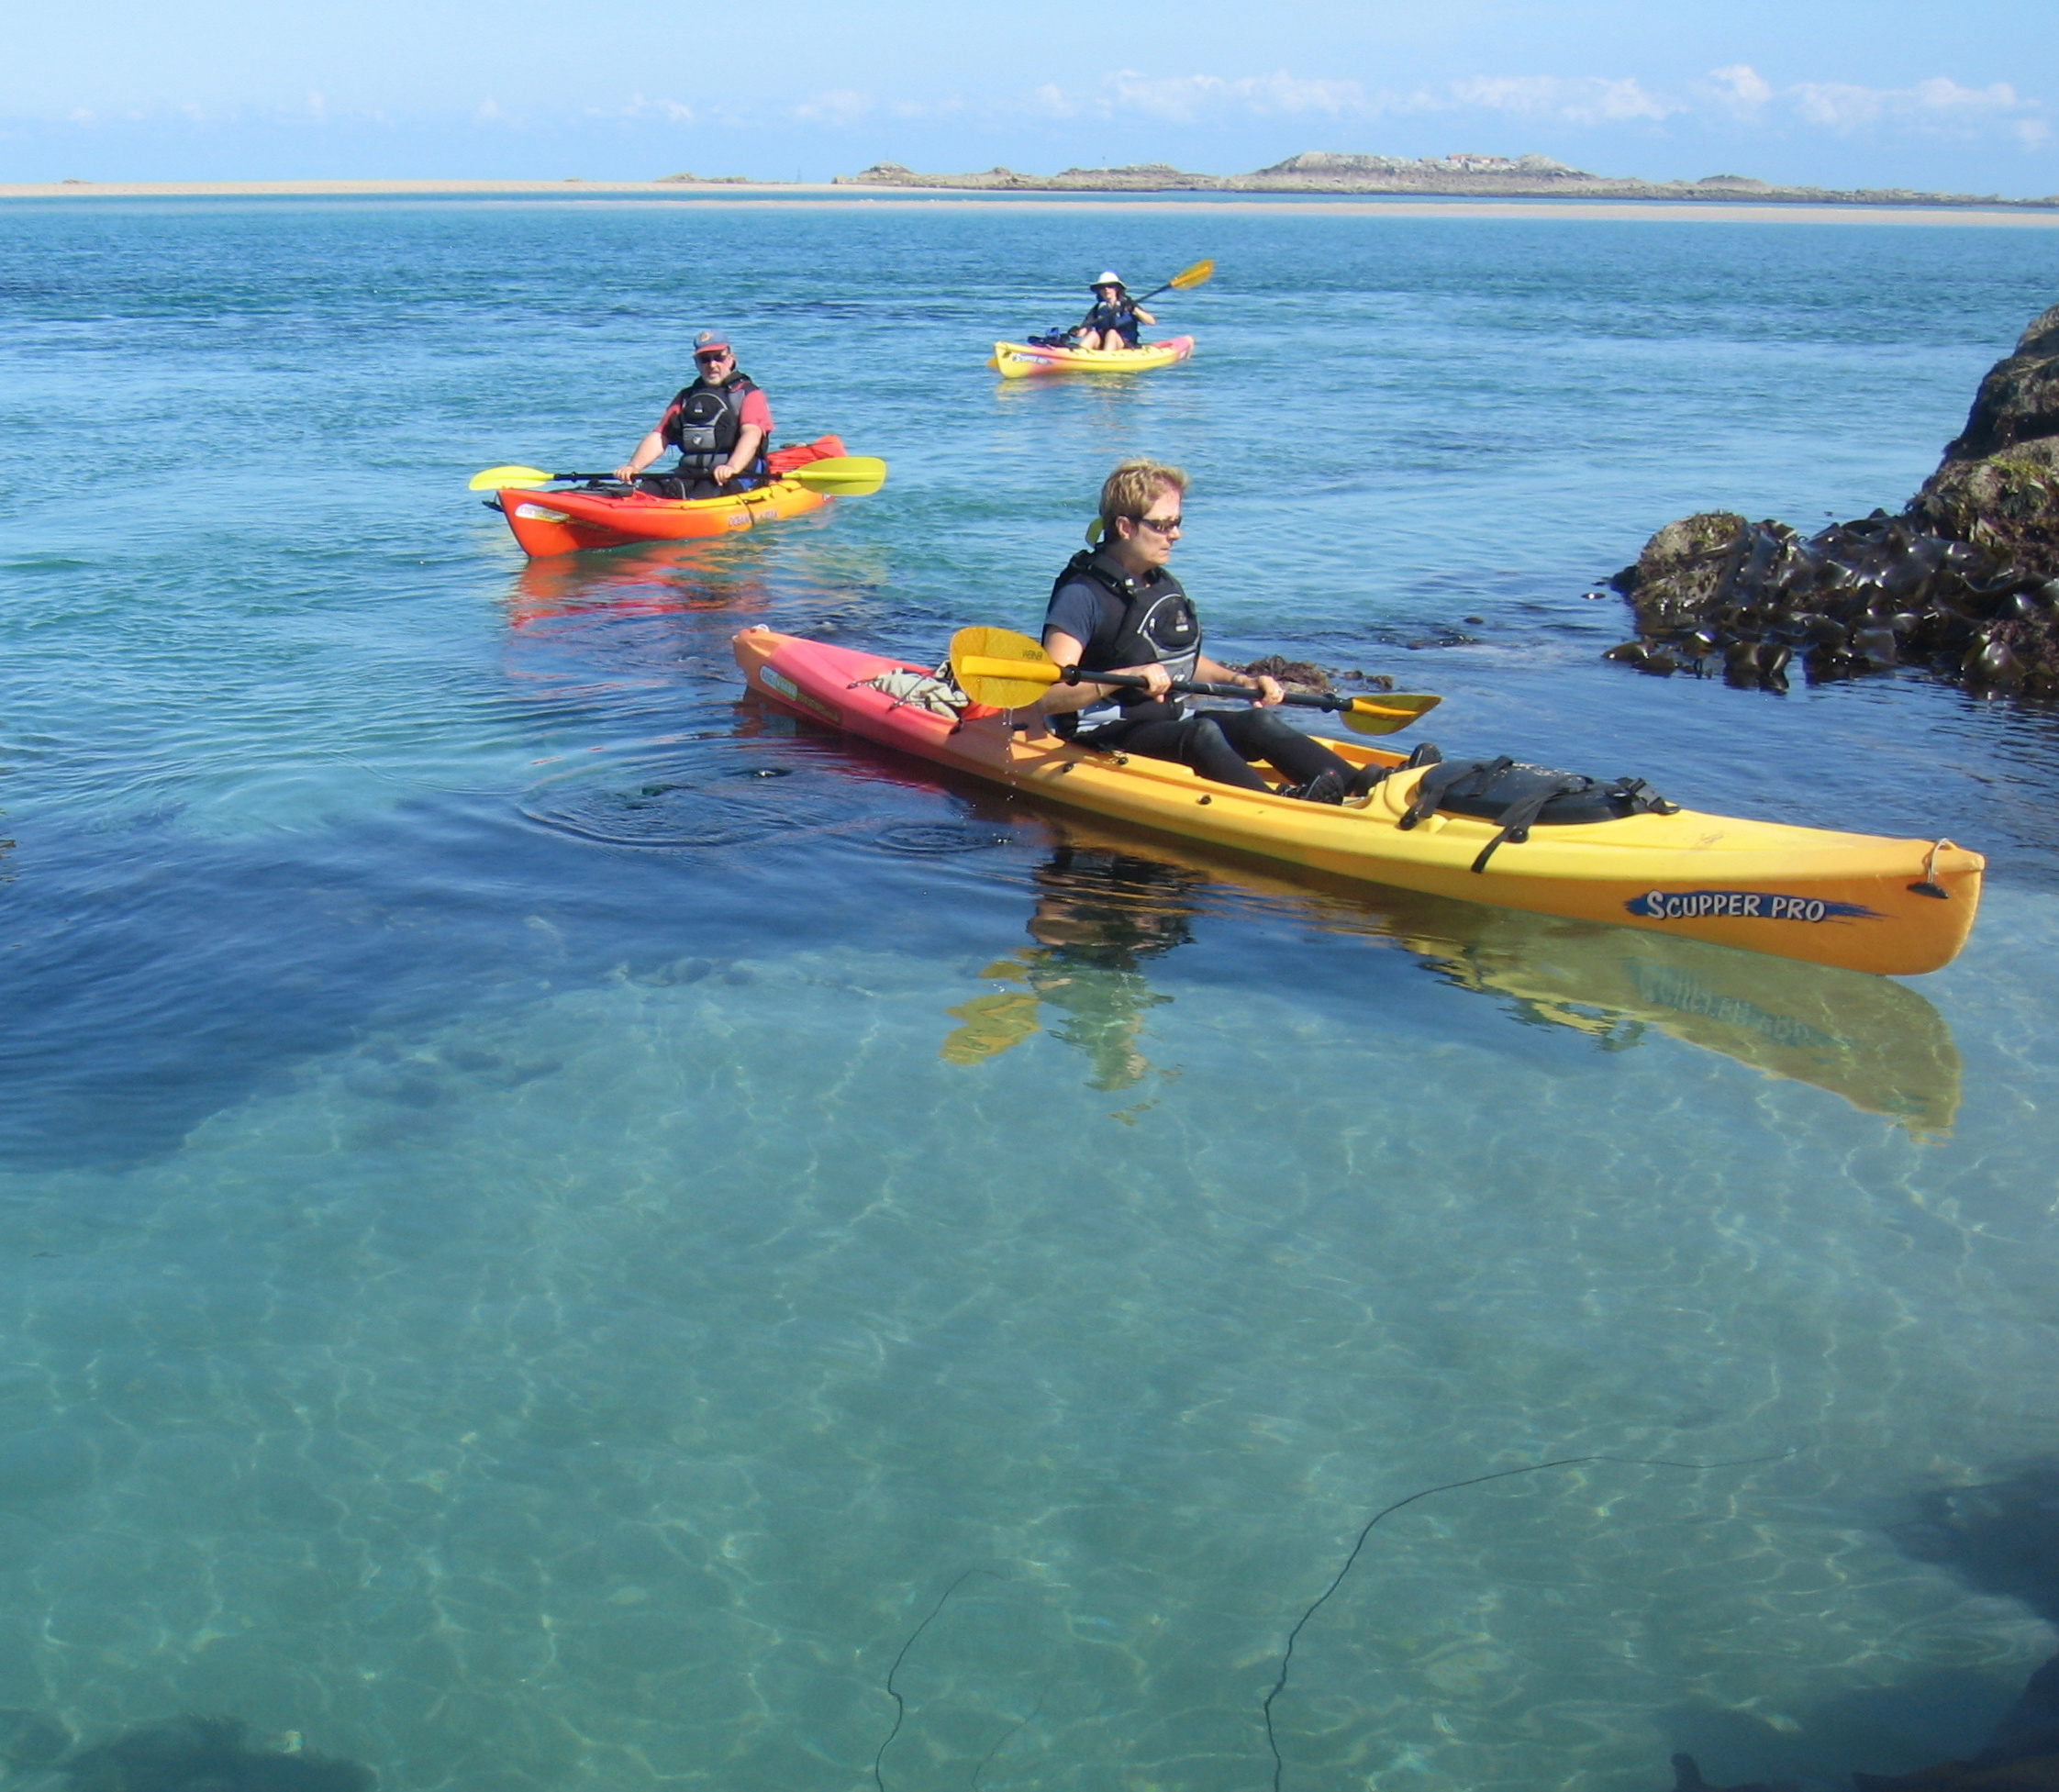 Kayak Class - Jersey Kayak AdventuresSaturday 8 June at 0930 - Free Activity !This free kayak class is an excellent opportunity to get top tips and safety advice from the experts at Jersey Kayak Adventures, the islands only specialist kayak company.The 2-hour class is ideal for anyone who already owns or is considering buying a kayak.Free, if you use your own kayak, paddle, wetsuit, buoyancy aid, paddle jacket and footwear.If you need to use one of our kayaks, you can join the class at the special price of £29 (includes kayak, paddle, buoyancy aid, paddle jacket and a long-john style wetsuit).